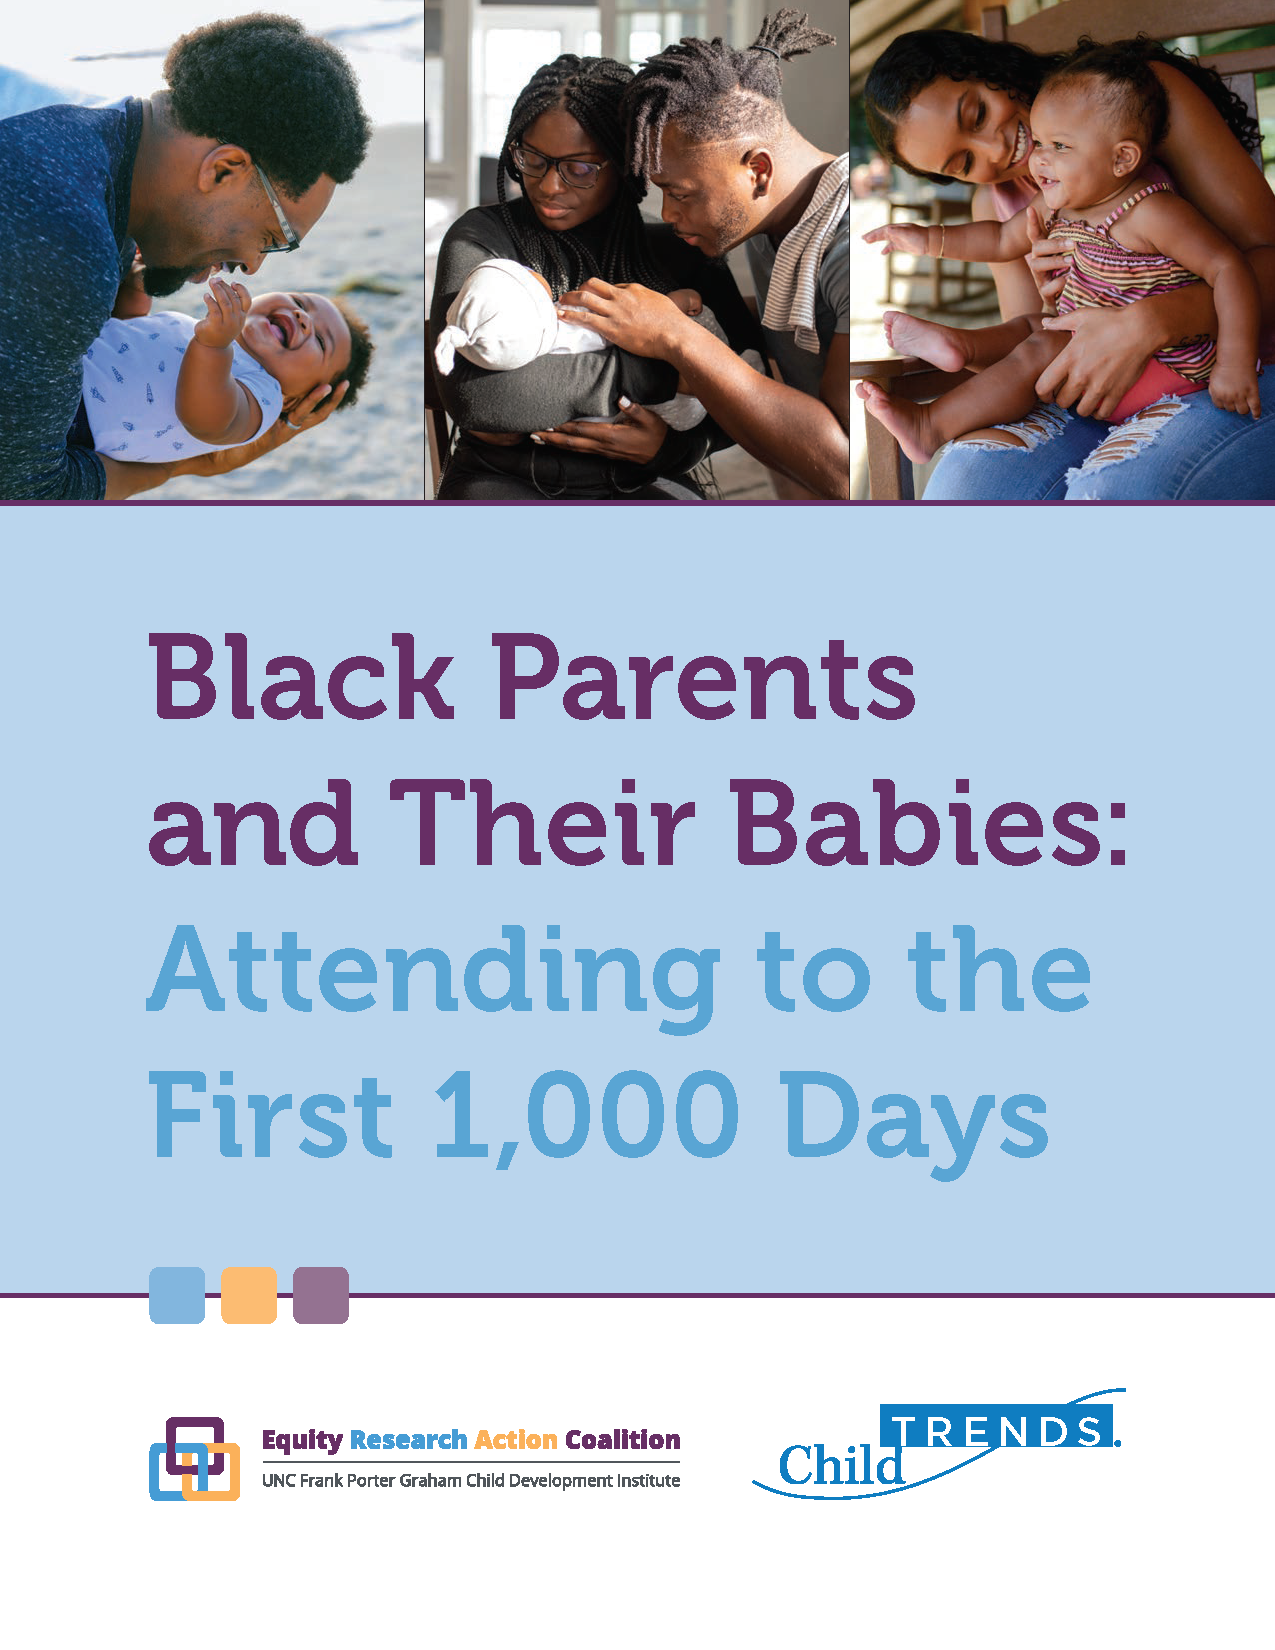 Black Parents and Their Babies: Attending to the First 1,000 Days